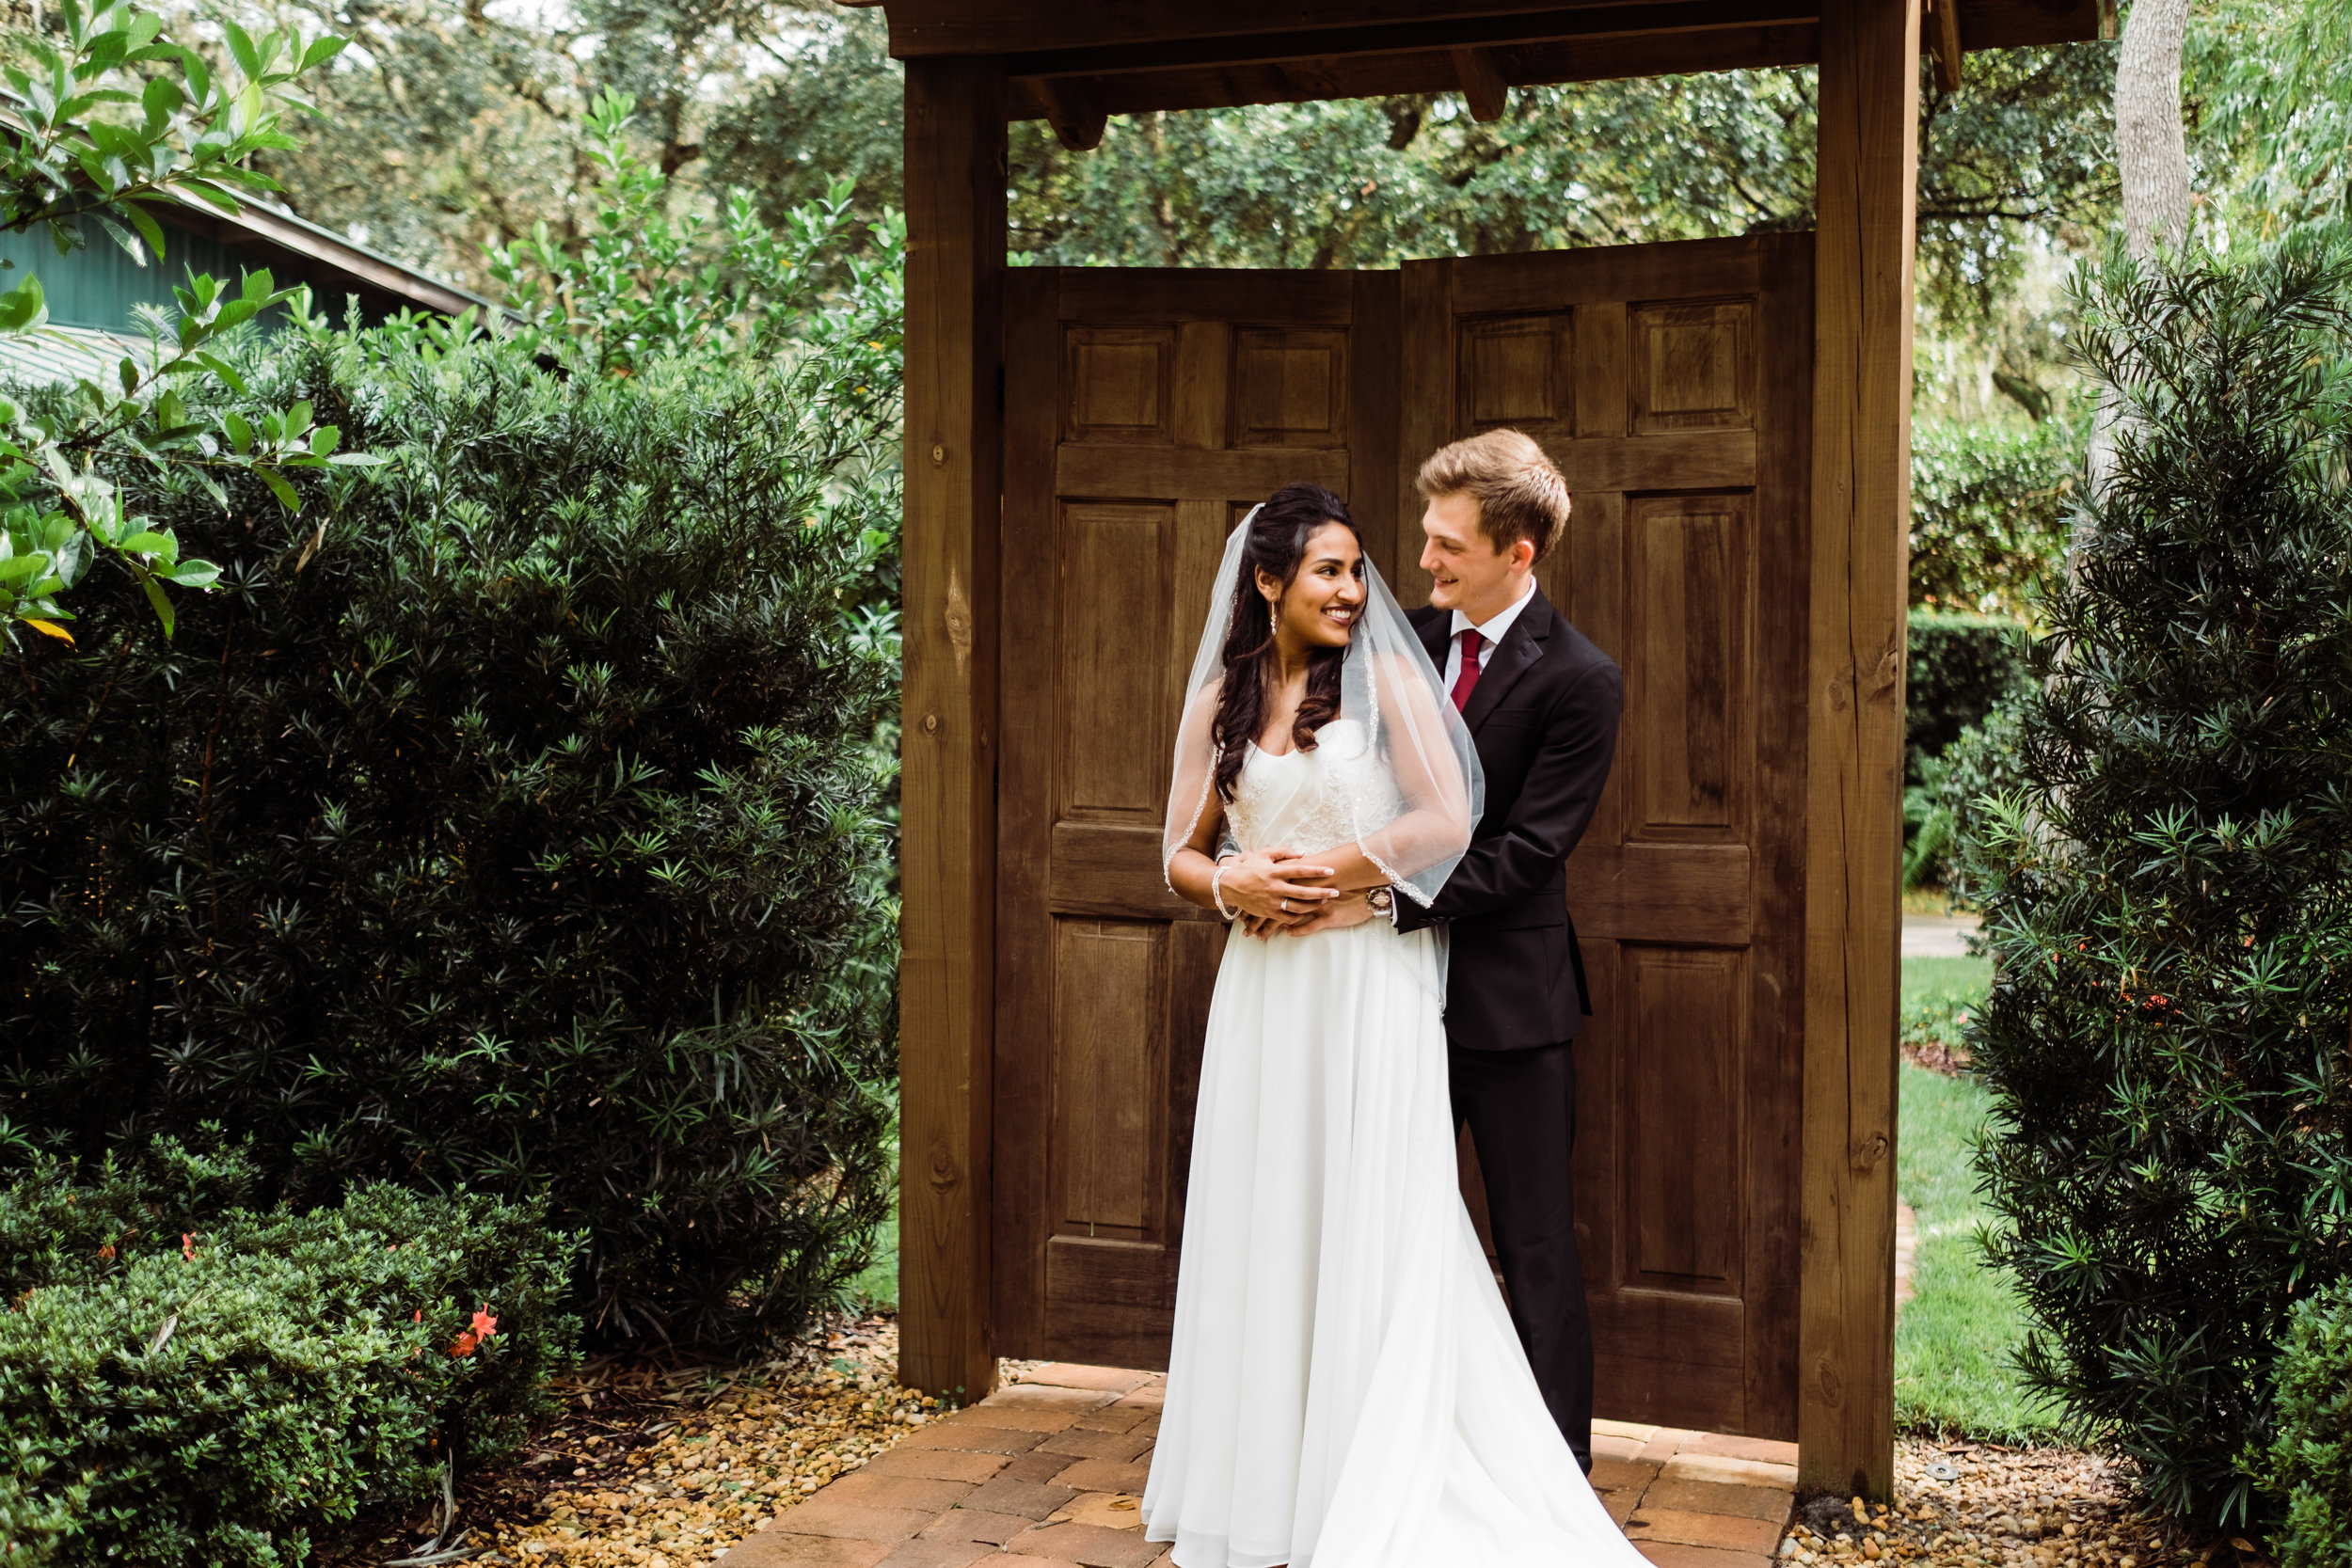 2017.10.08 Courson Additional Files Club Lake Plantation Wedding (66 of 134).jpg